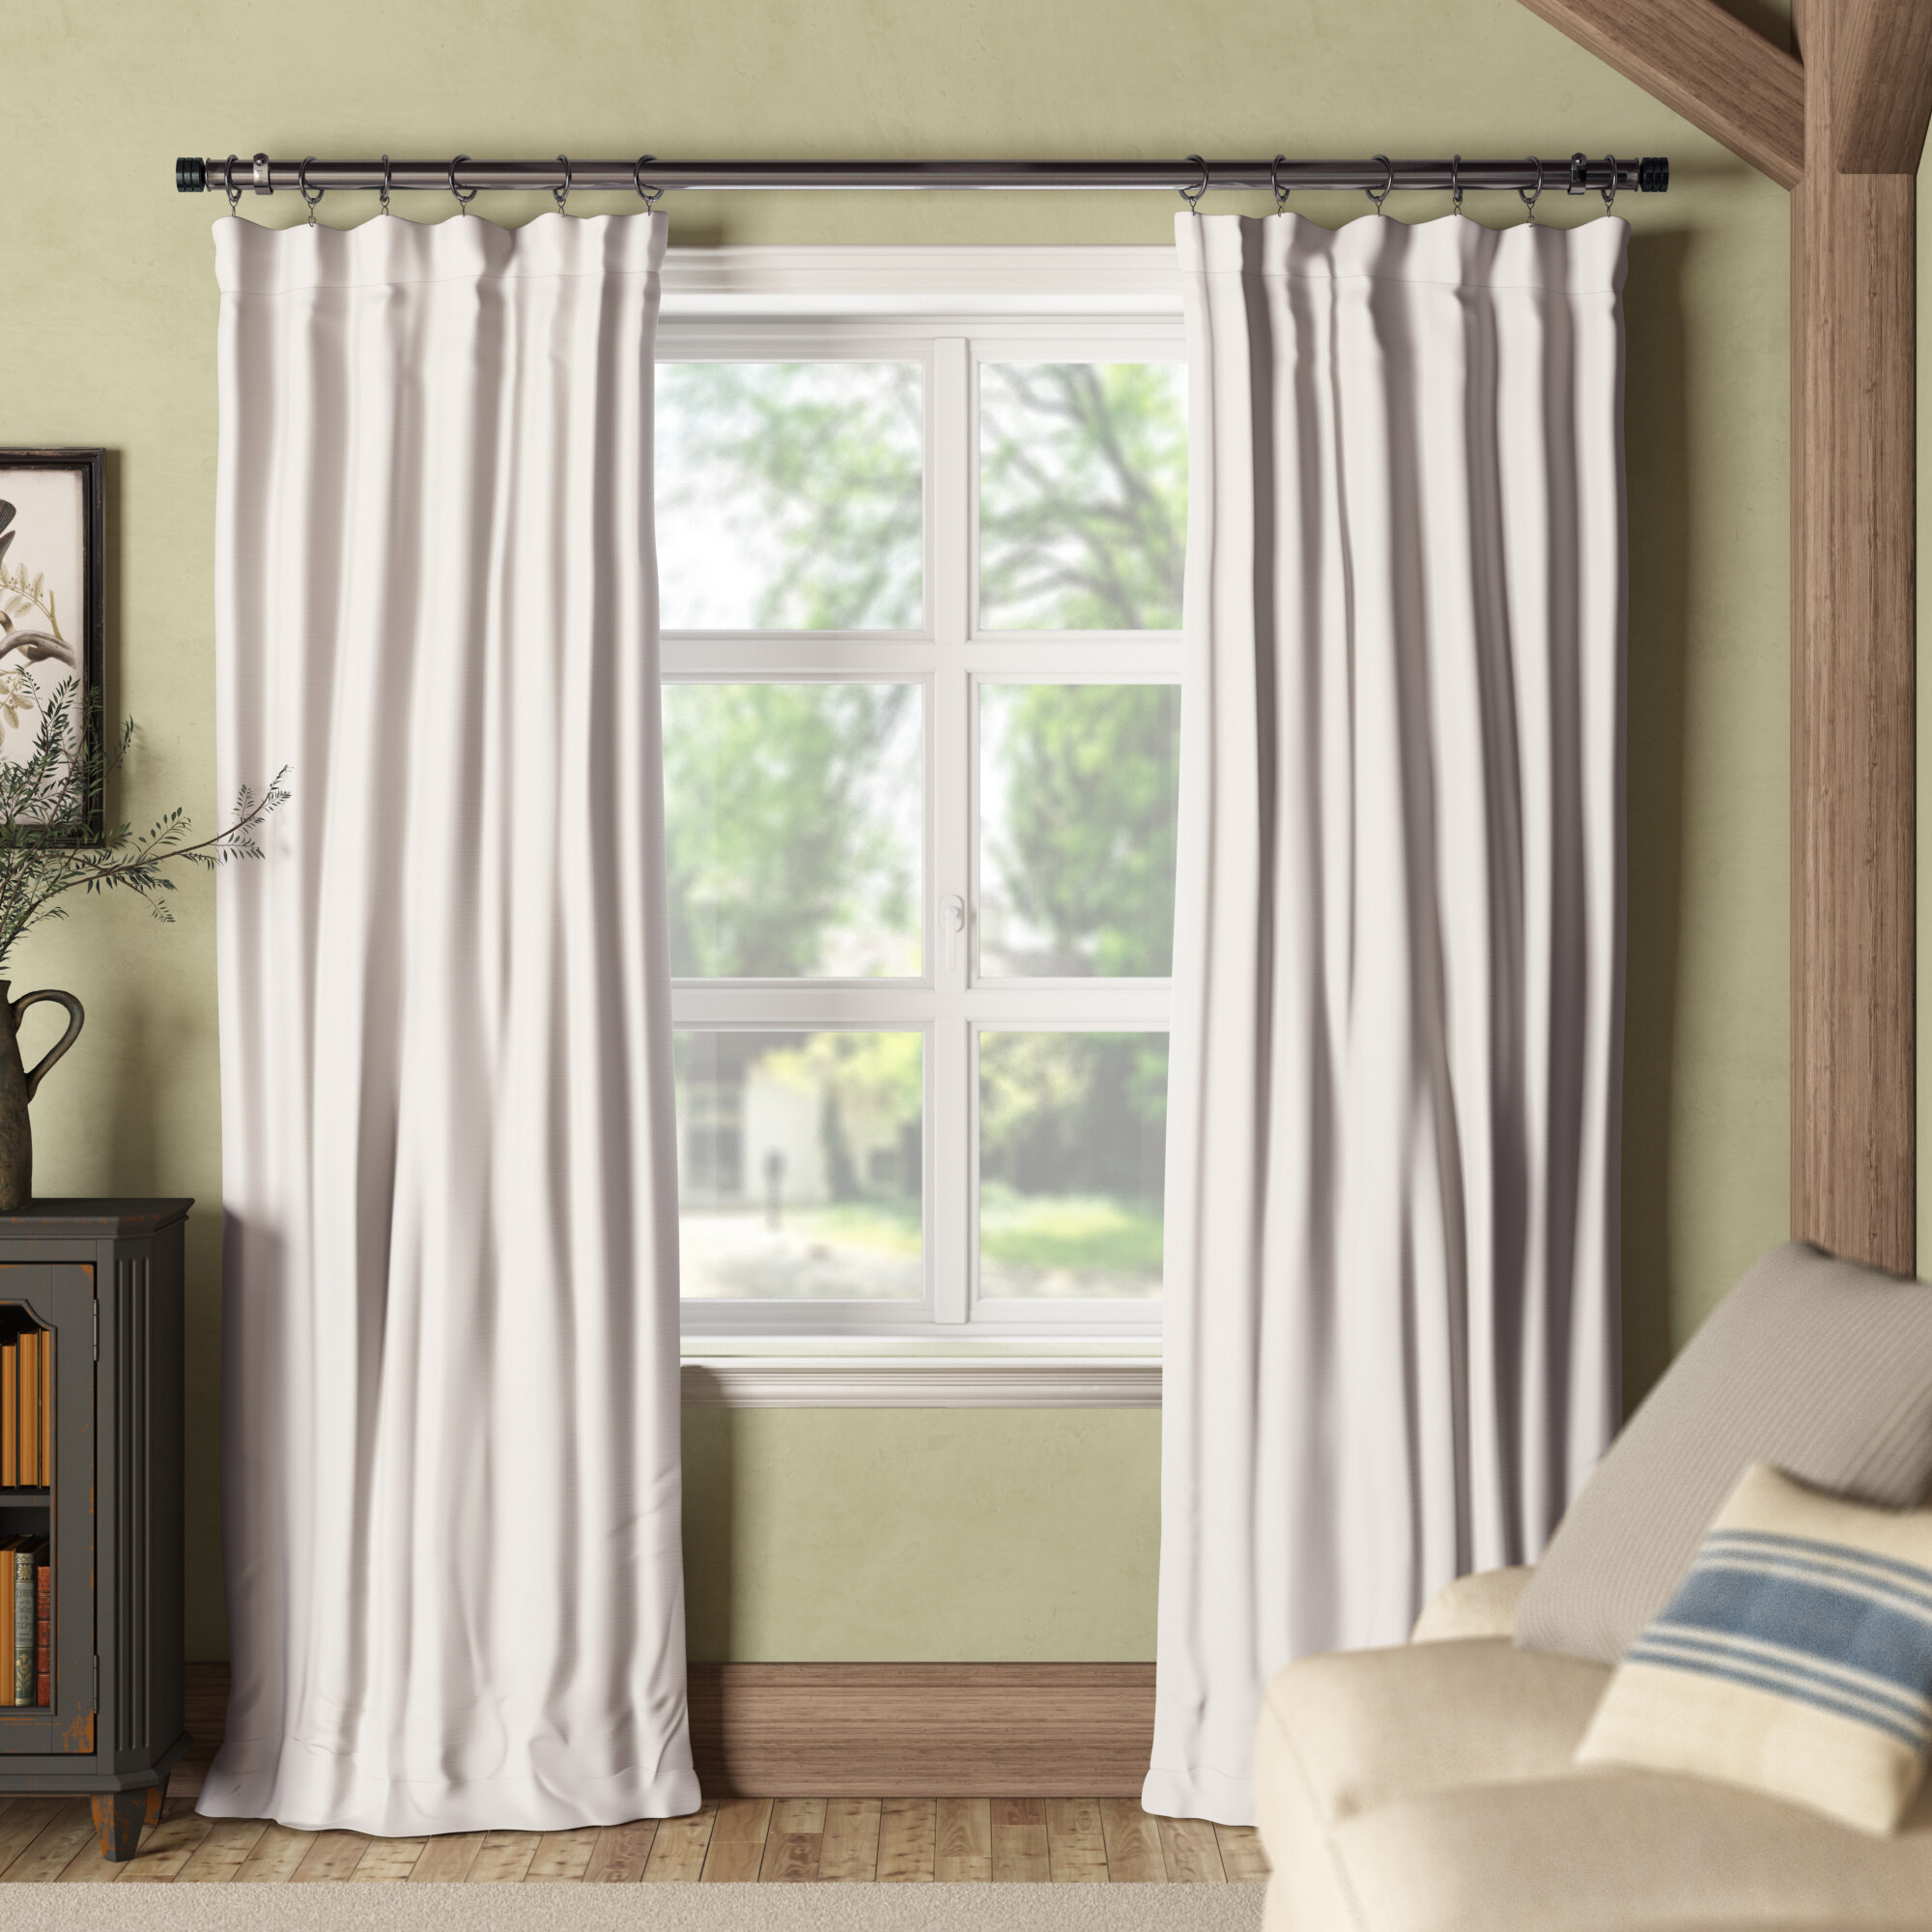 Key Features The Densely Woven Curtains Darken Room And Provide Privacy By Preventing People Outside From Seeing Into Effective At